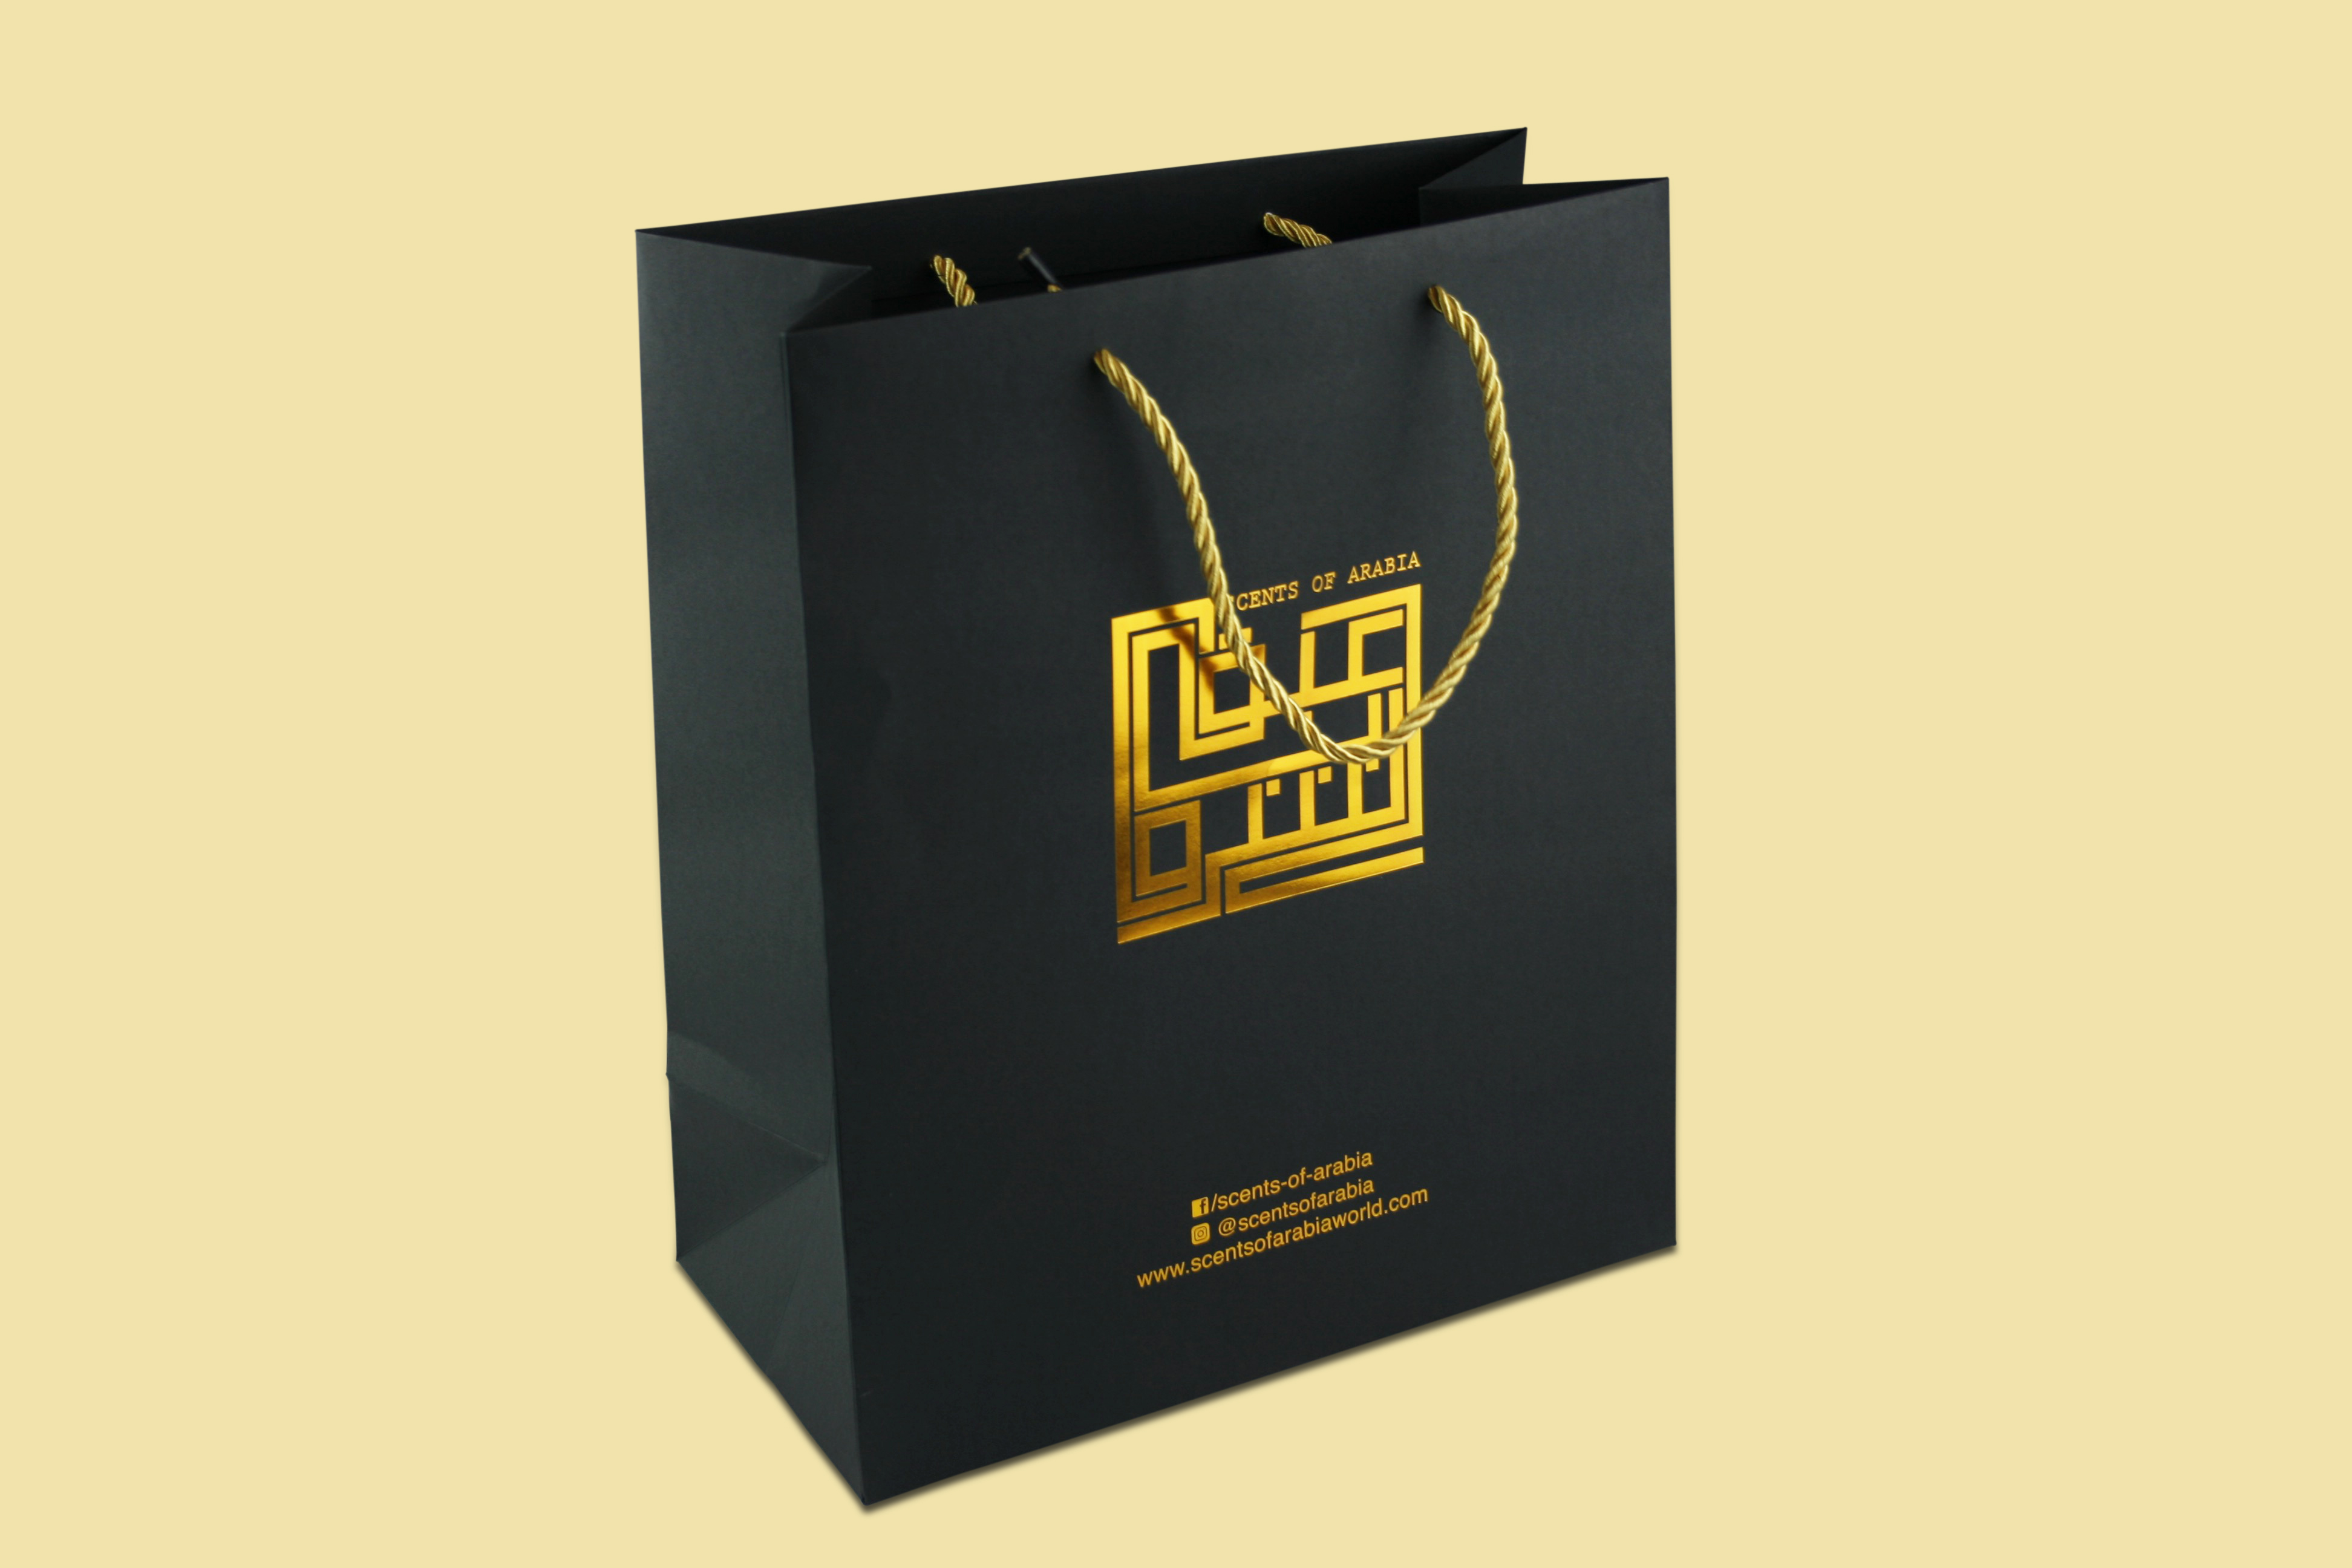 Black Special Paper Bag With a Rope and Gold Foiling.